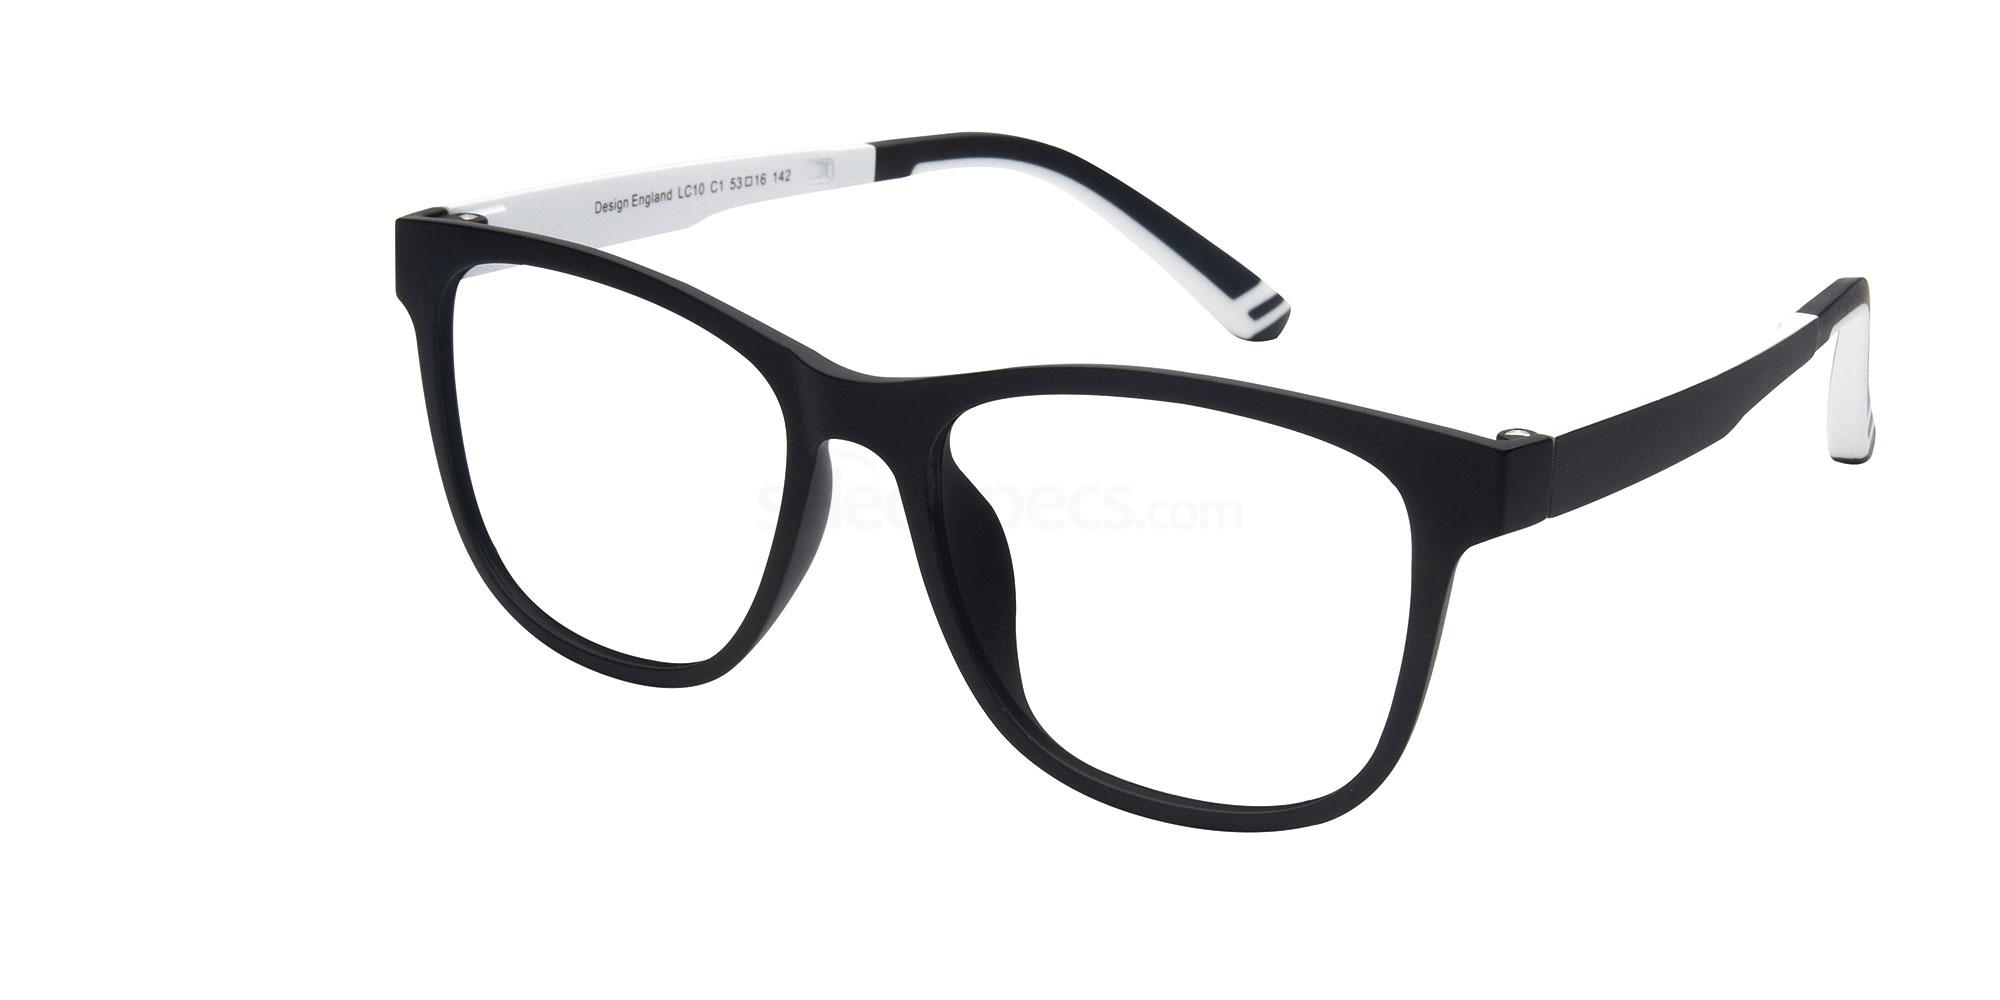 C1 LC10 - with Clip On Glasses, London Club